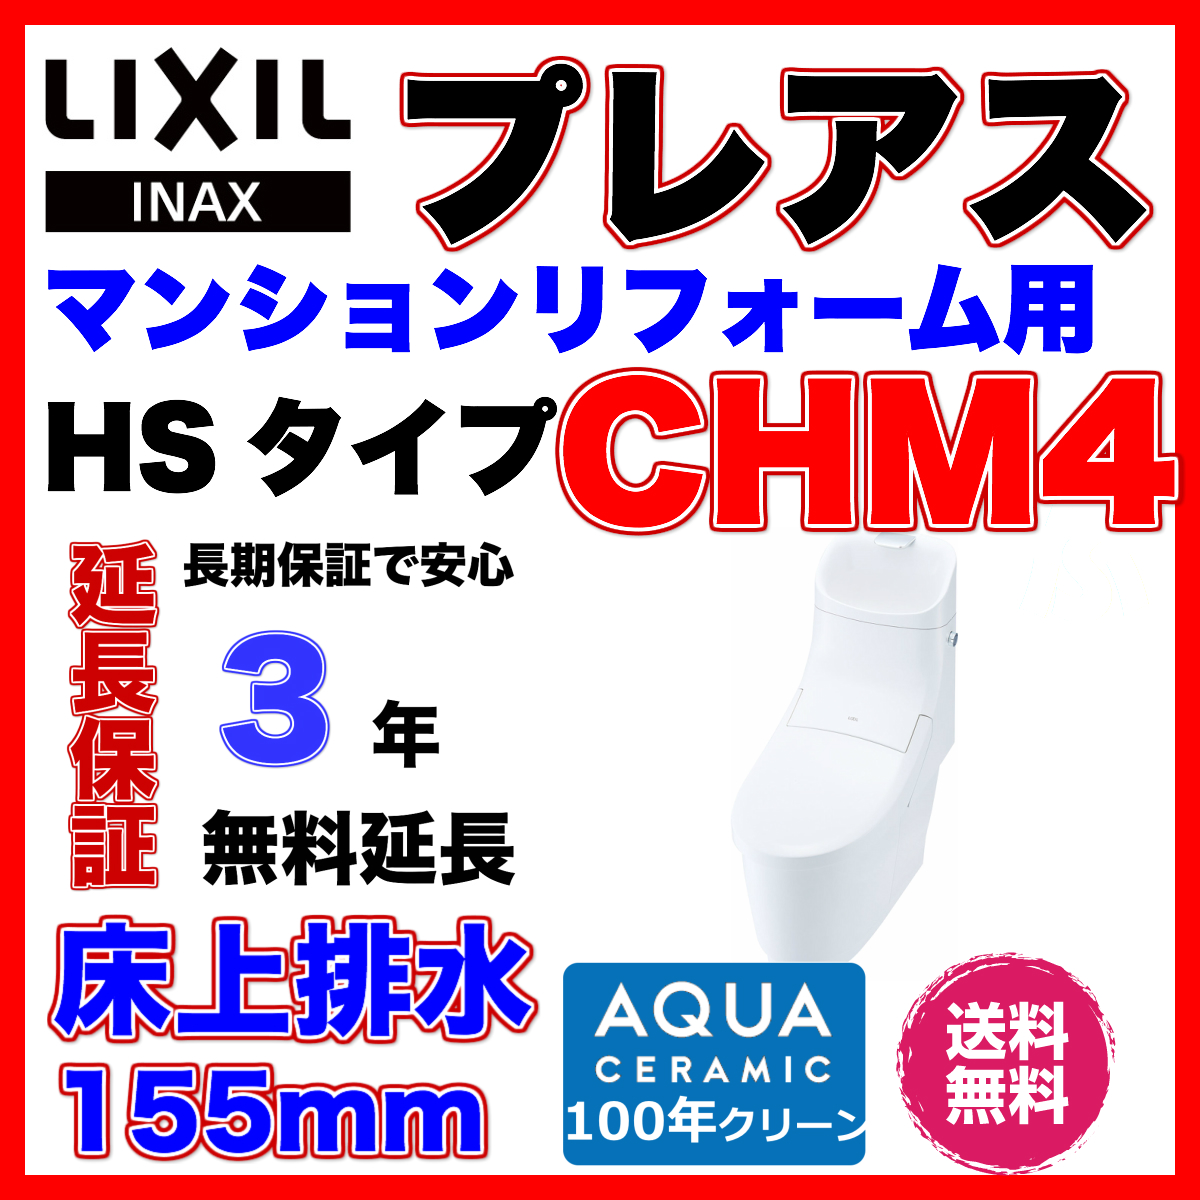 LIXIL プレアスHS マンションリフォーム 手洗い付き グレードCHM4 YBC-CH10PM DT-CH184PM 床上排水155  ECO5 送料無料 3年延長保証対象商品 INAX